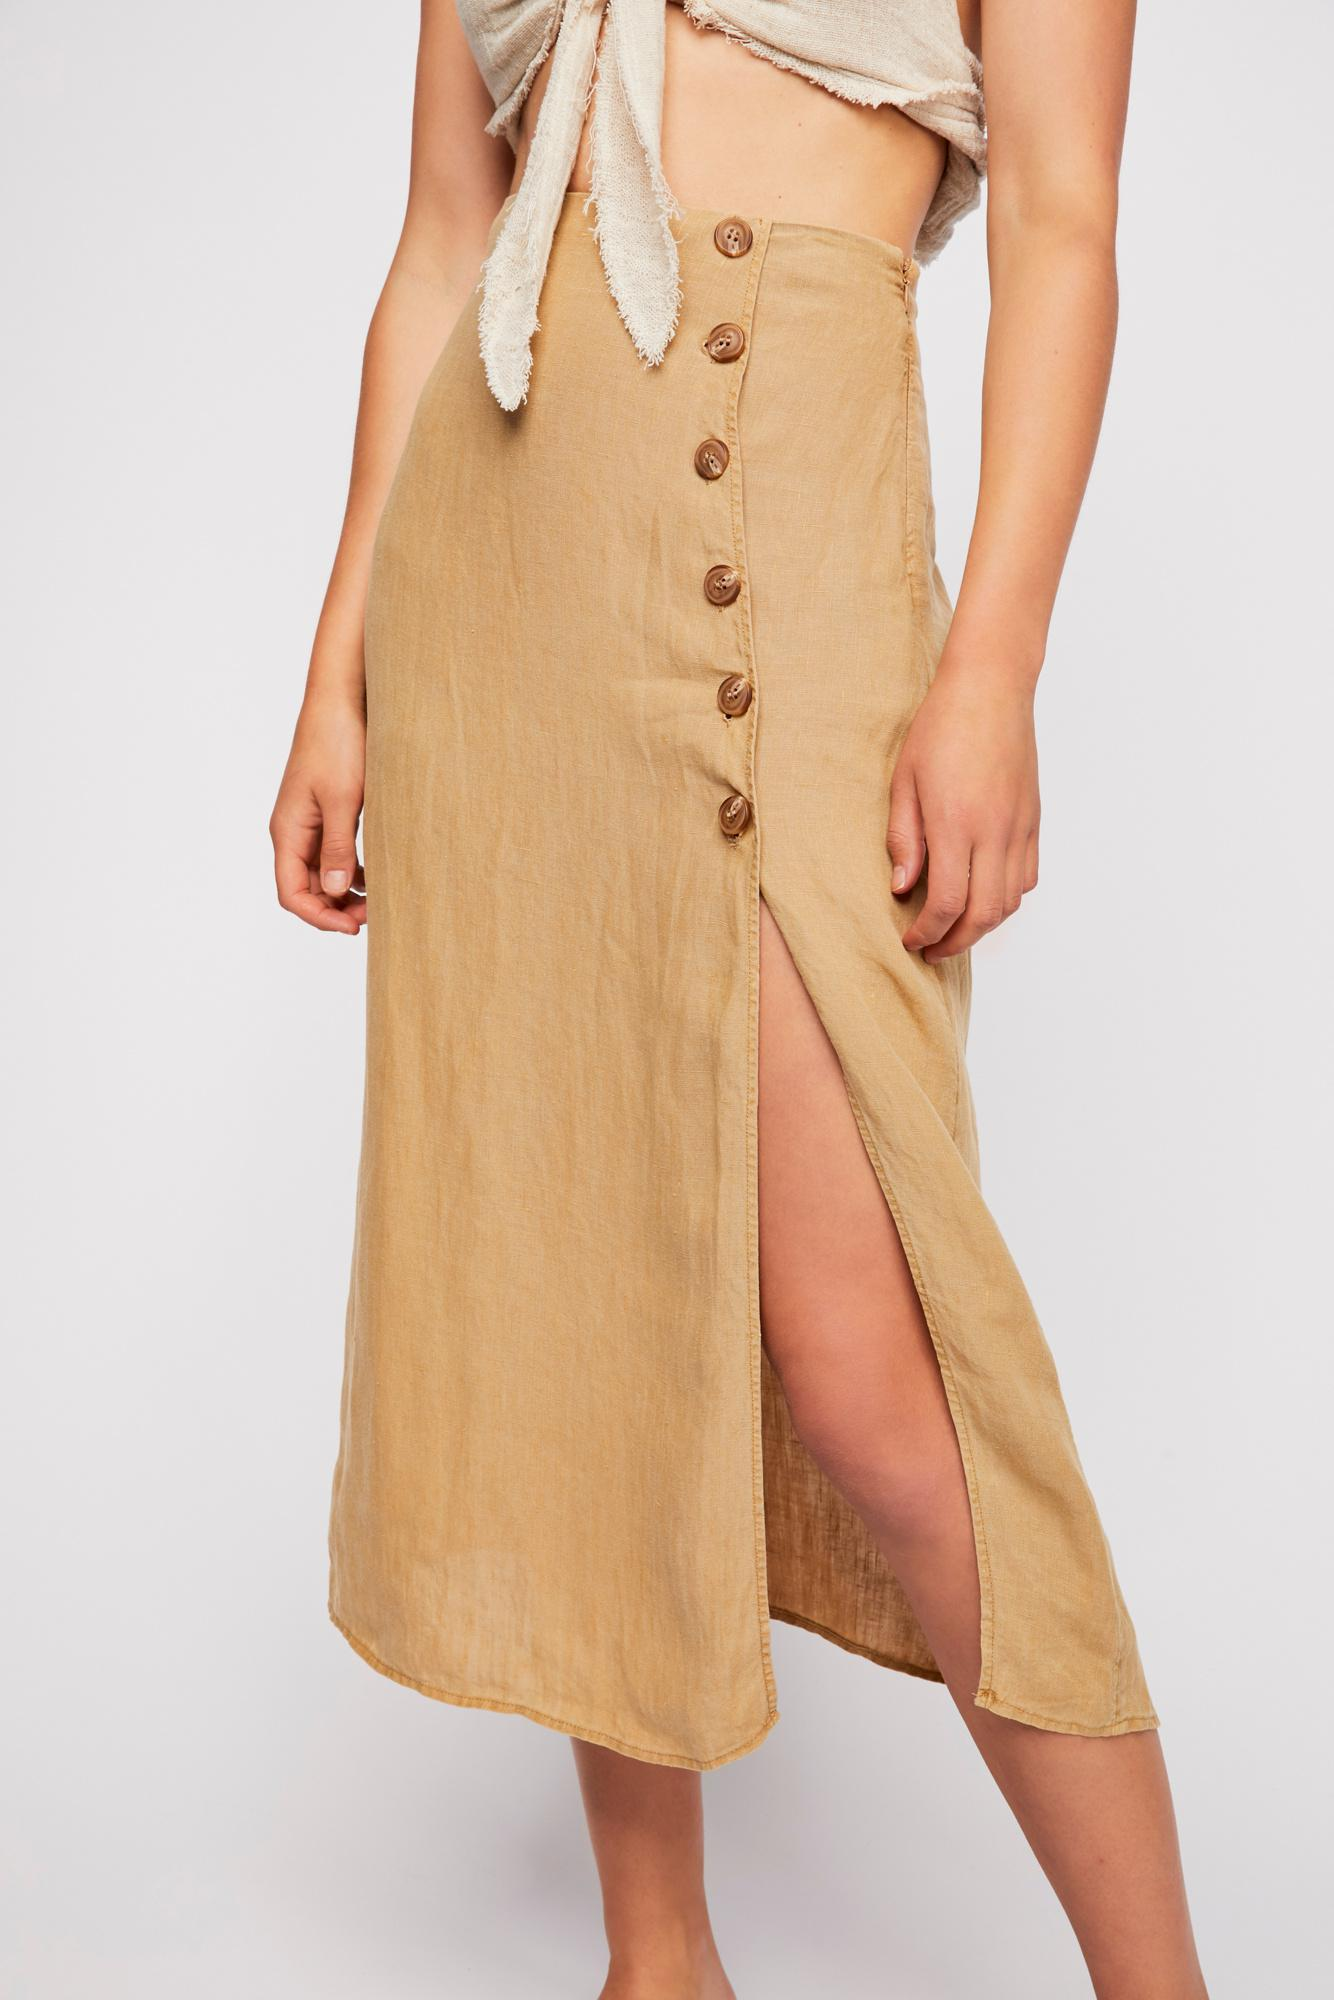 7bc3a2a51c121 Lyst - Free People Roman Holiday Midi Skirt in Metallic